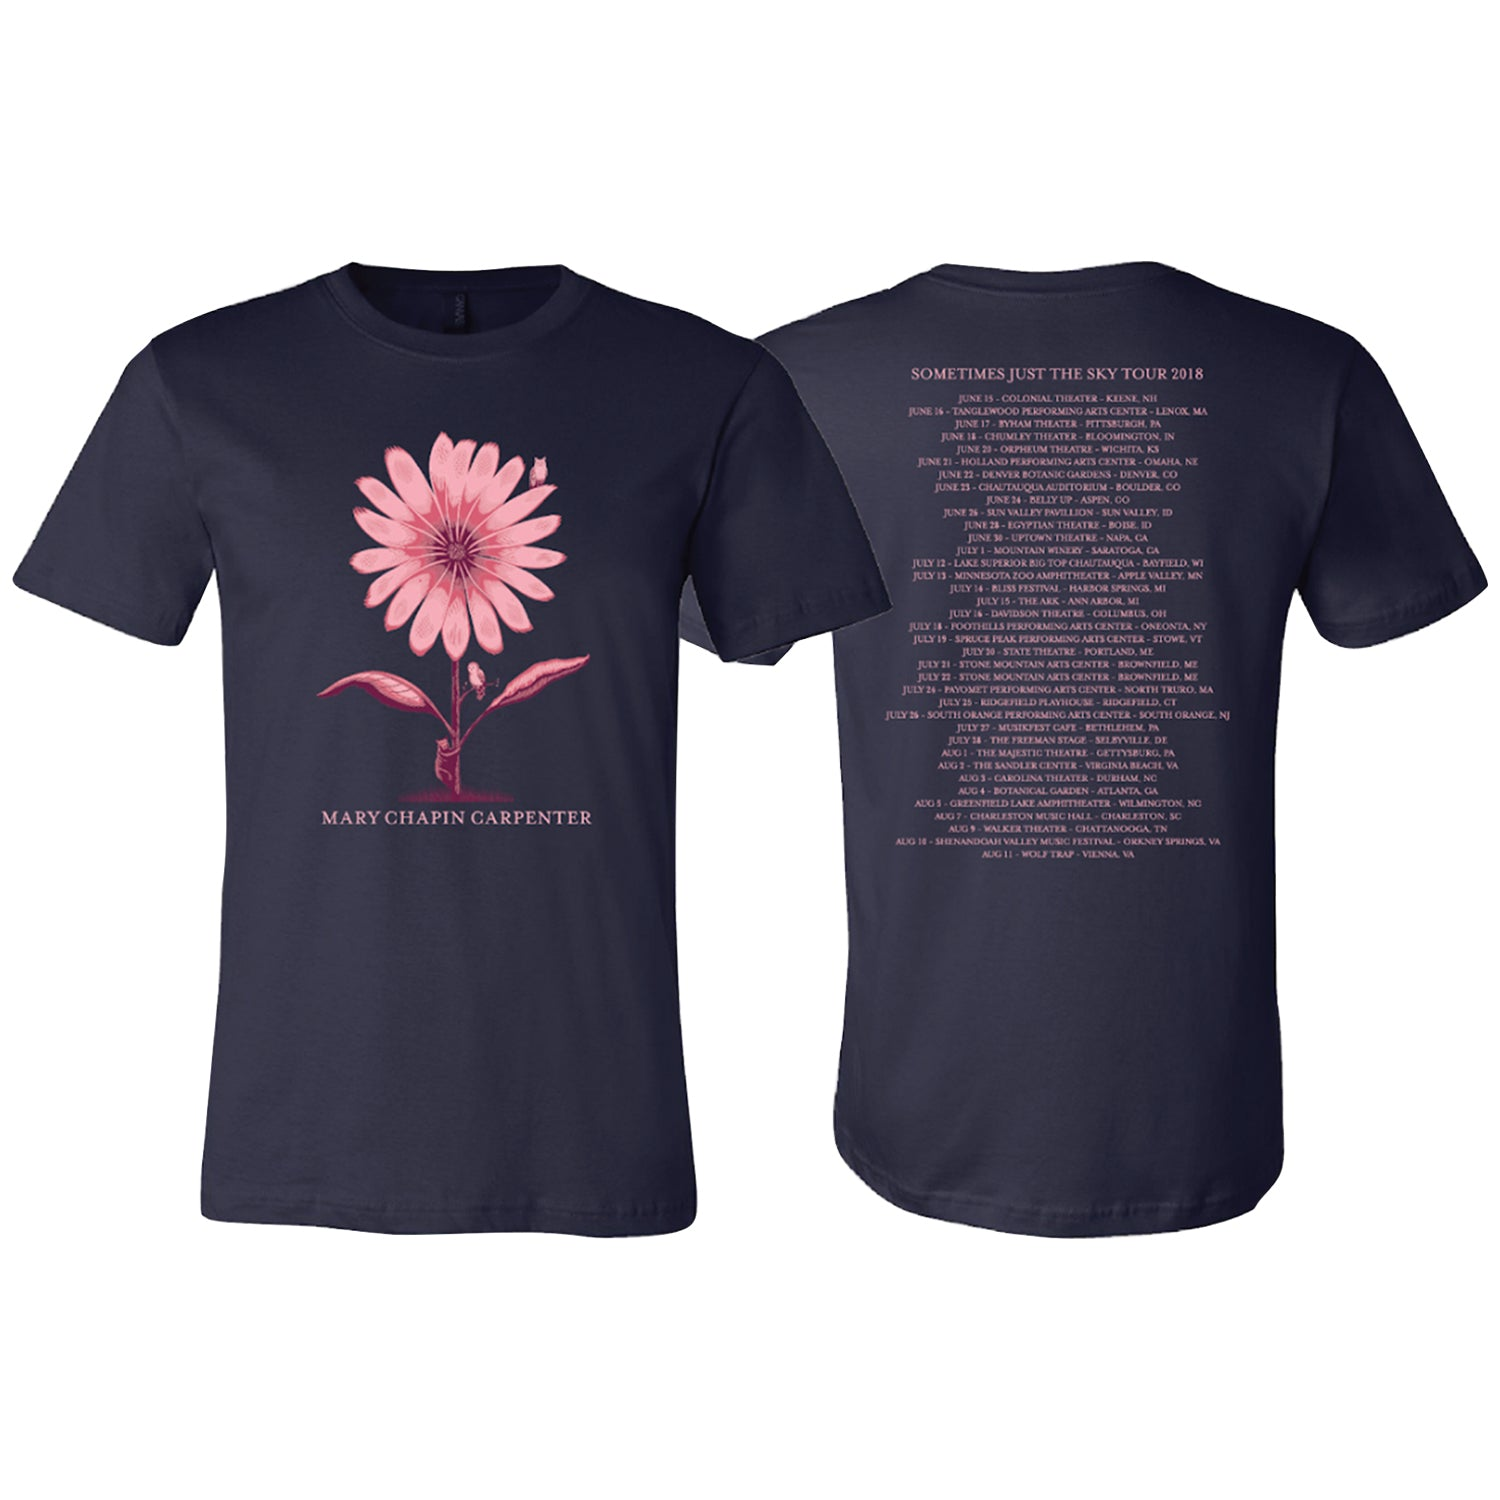 Sometimes Just the Sky 2018 Tour Tee